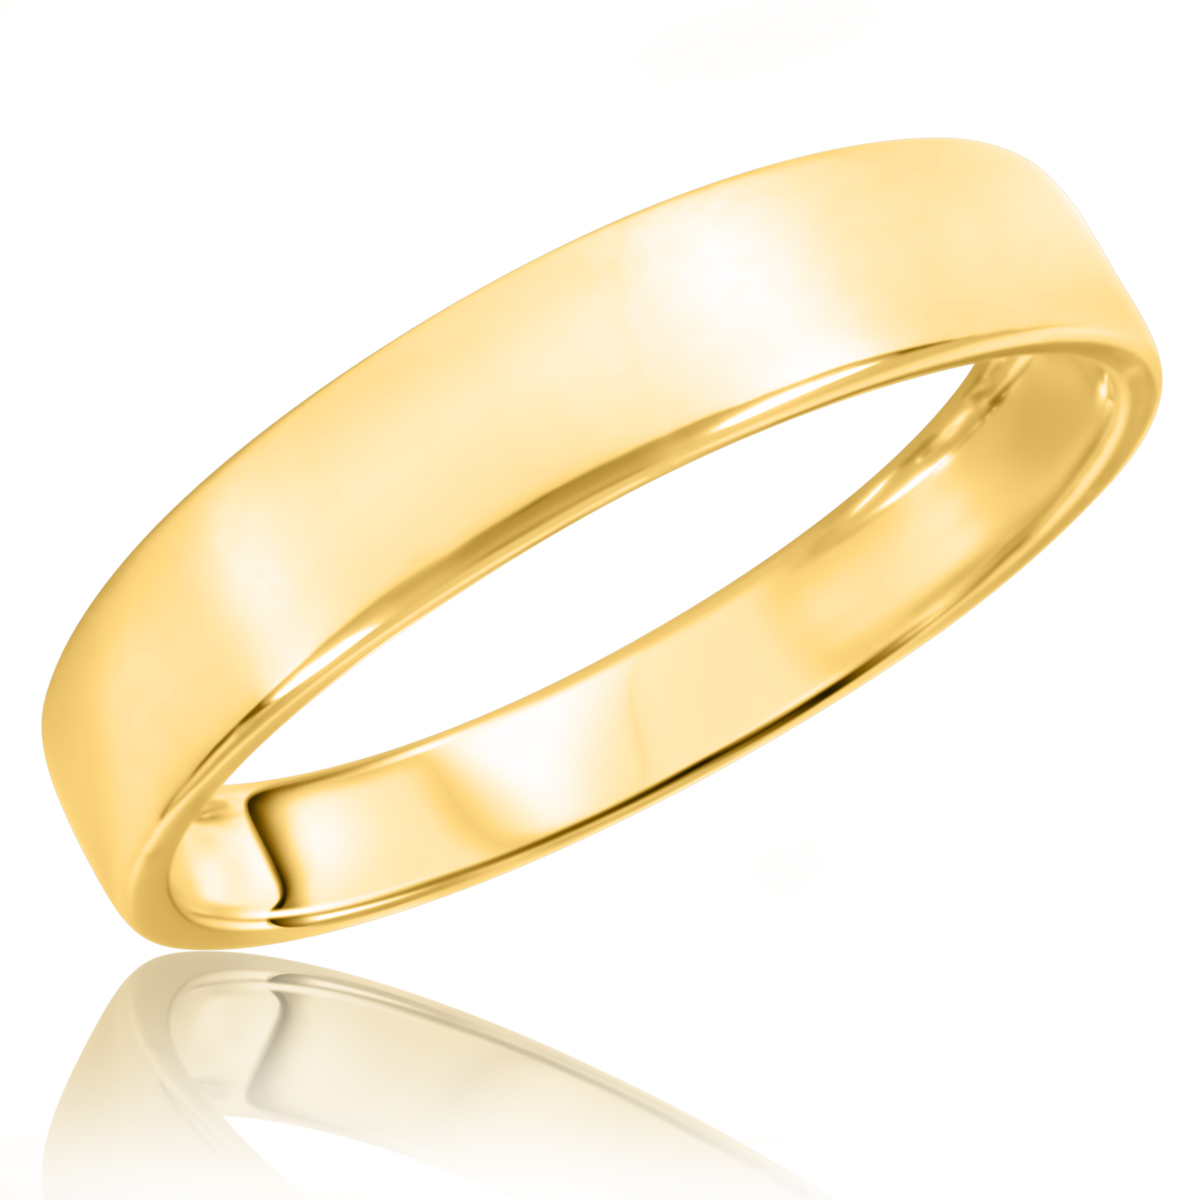 Traditional High Polish Euro Fit, 5 millimeter, 10K Yellow Gold Traditional Mens